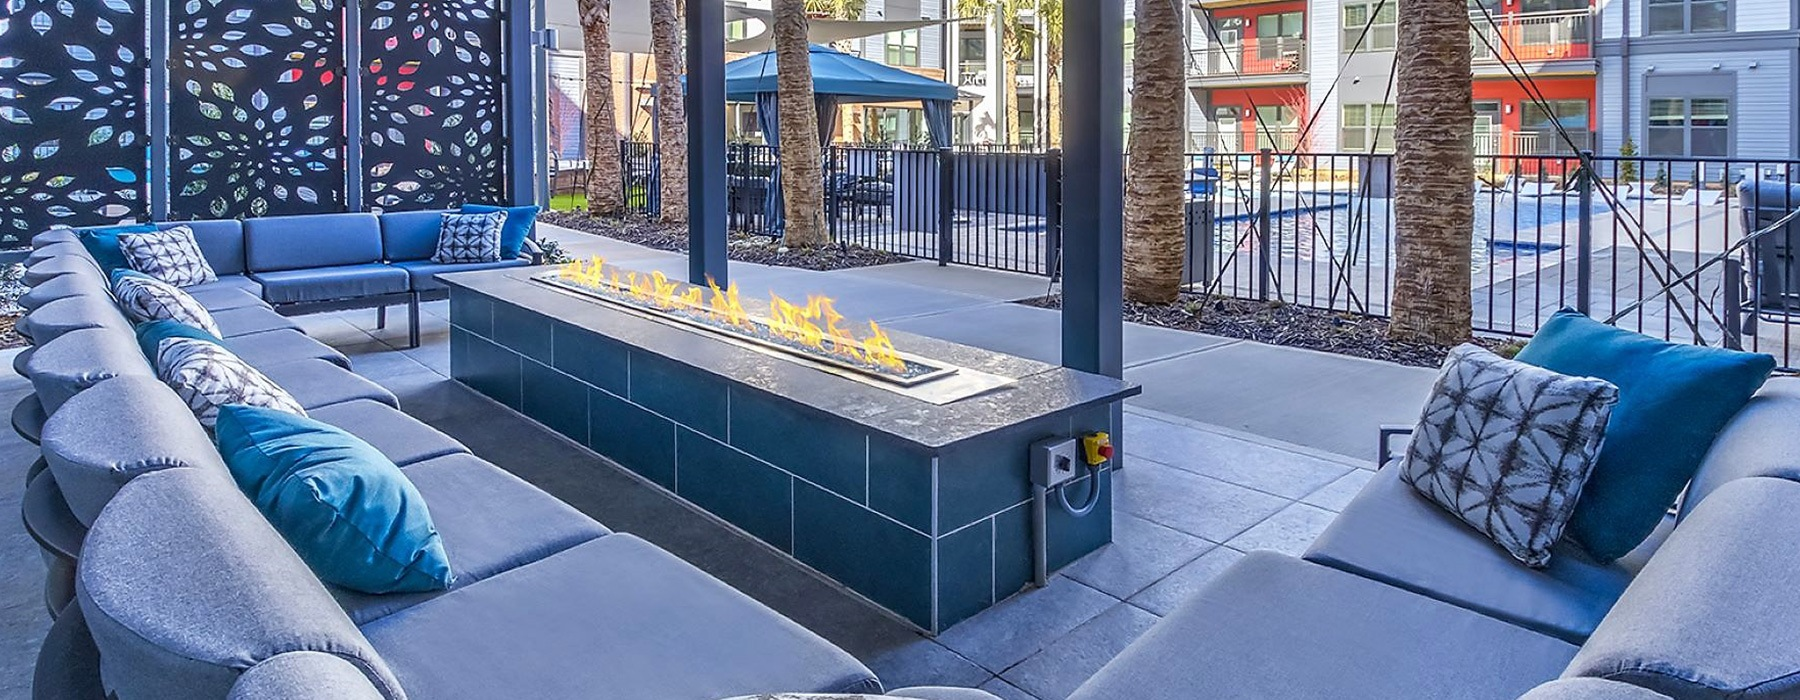 spacious seating around a fire pit beside the pool area